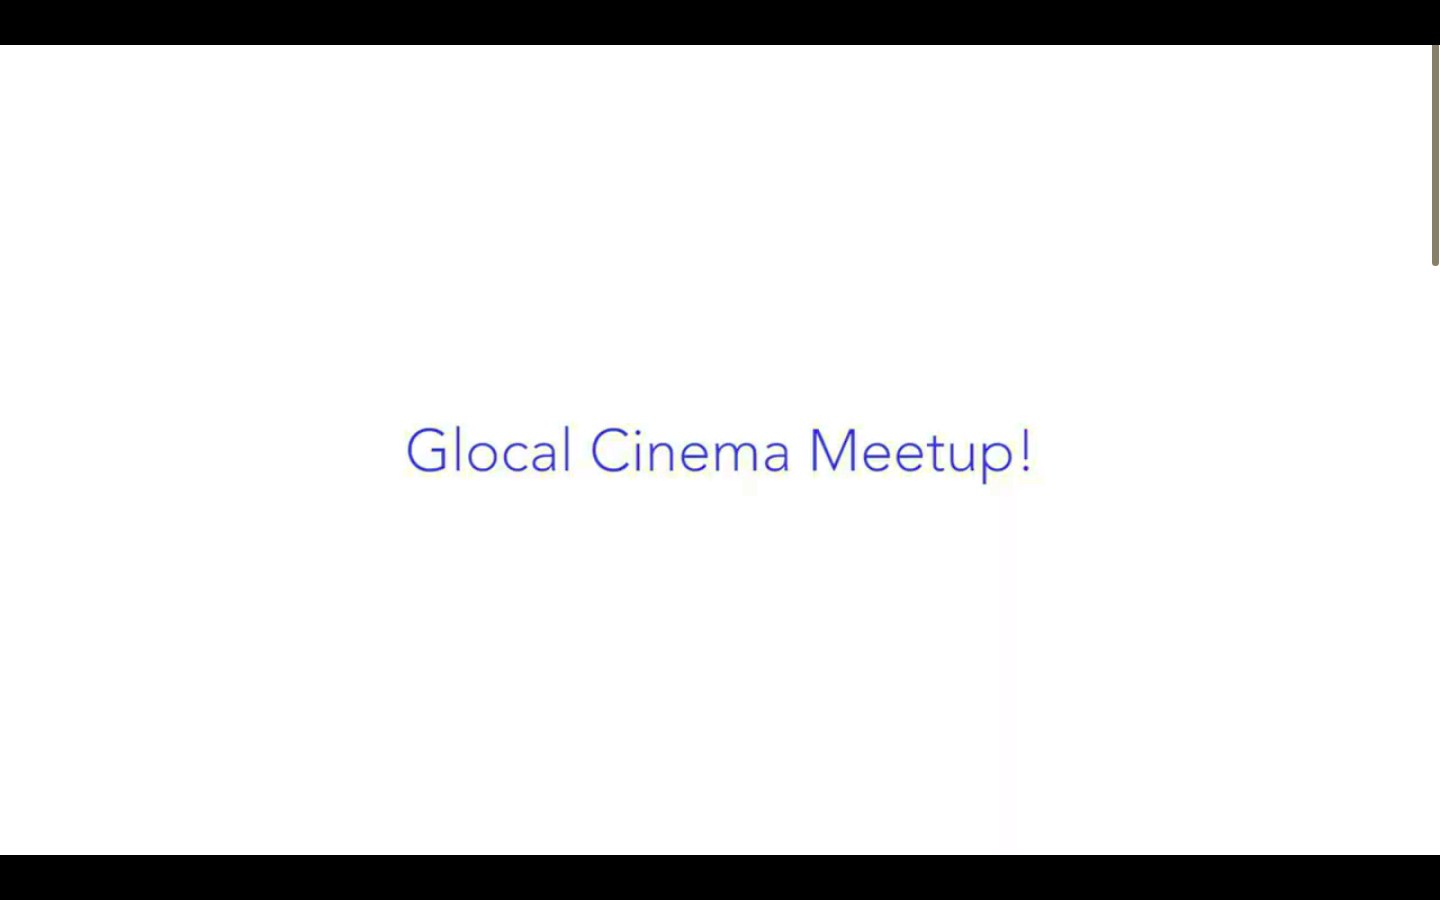 Glocal Cinema Meetup!